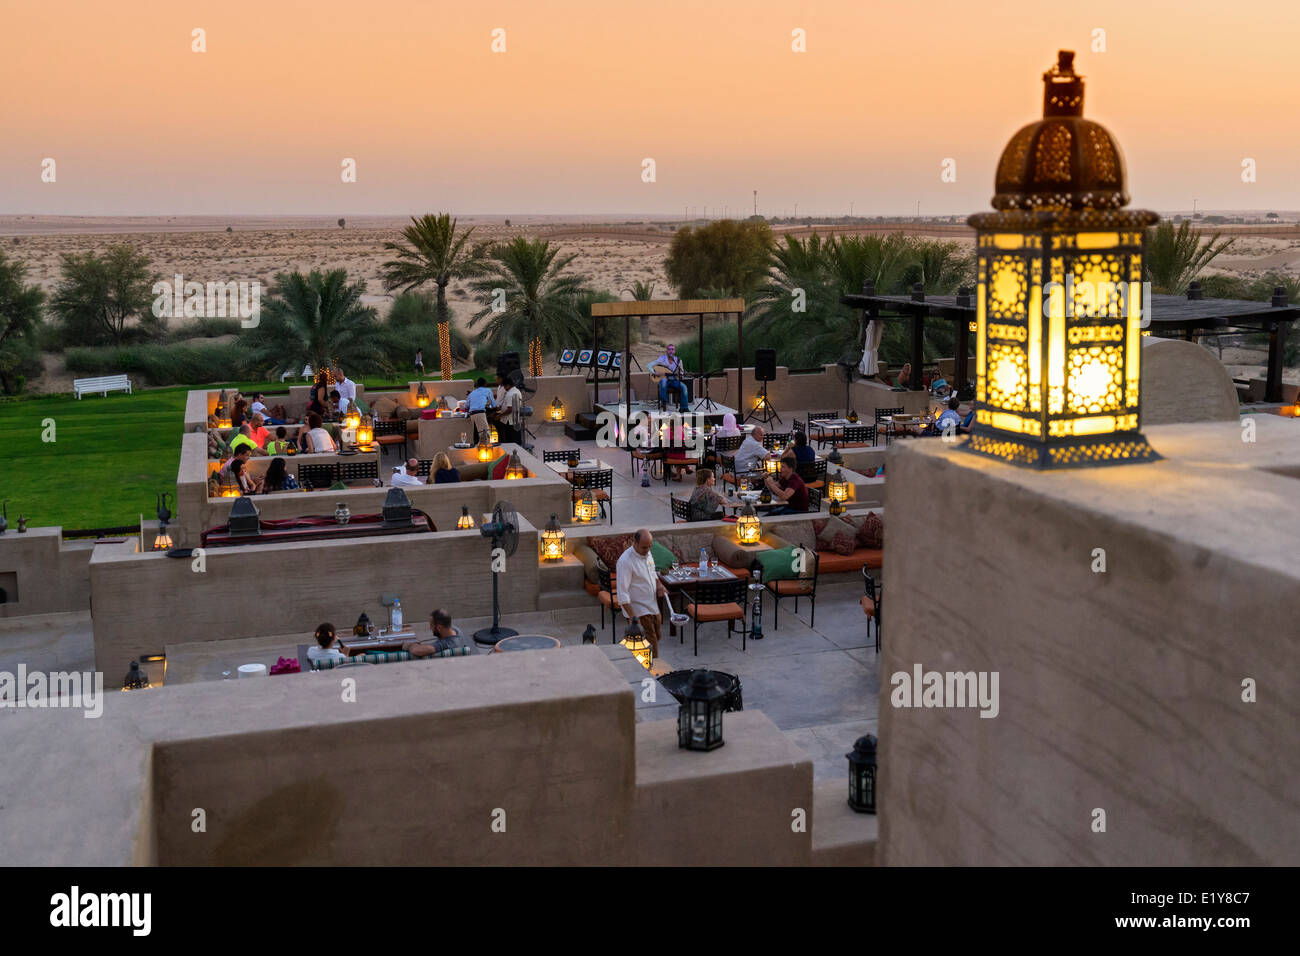 Dusk at rooftop bar at Bab al Shams desert hotel and resort in Dubai United Arab Emirates - Stock Image